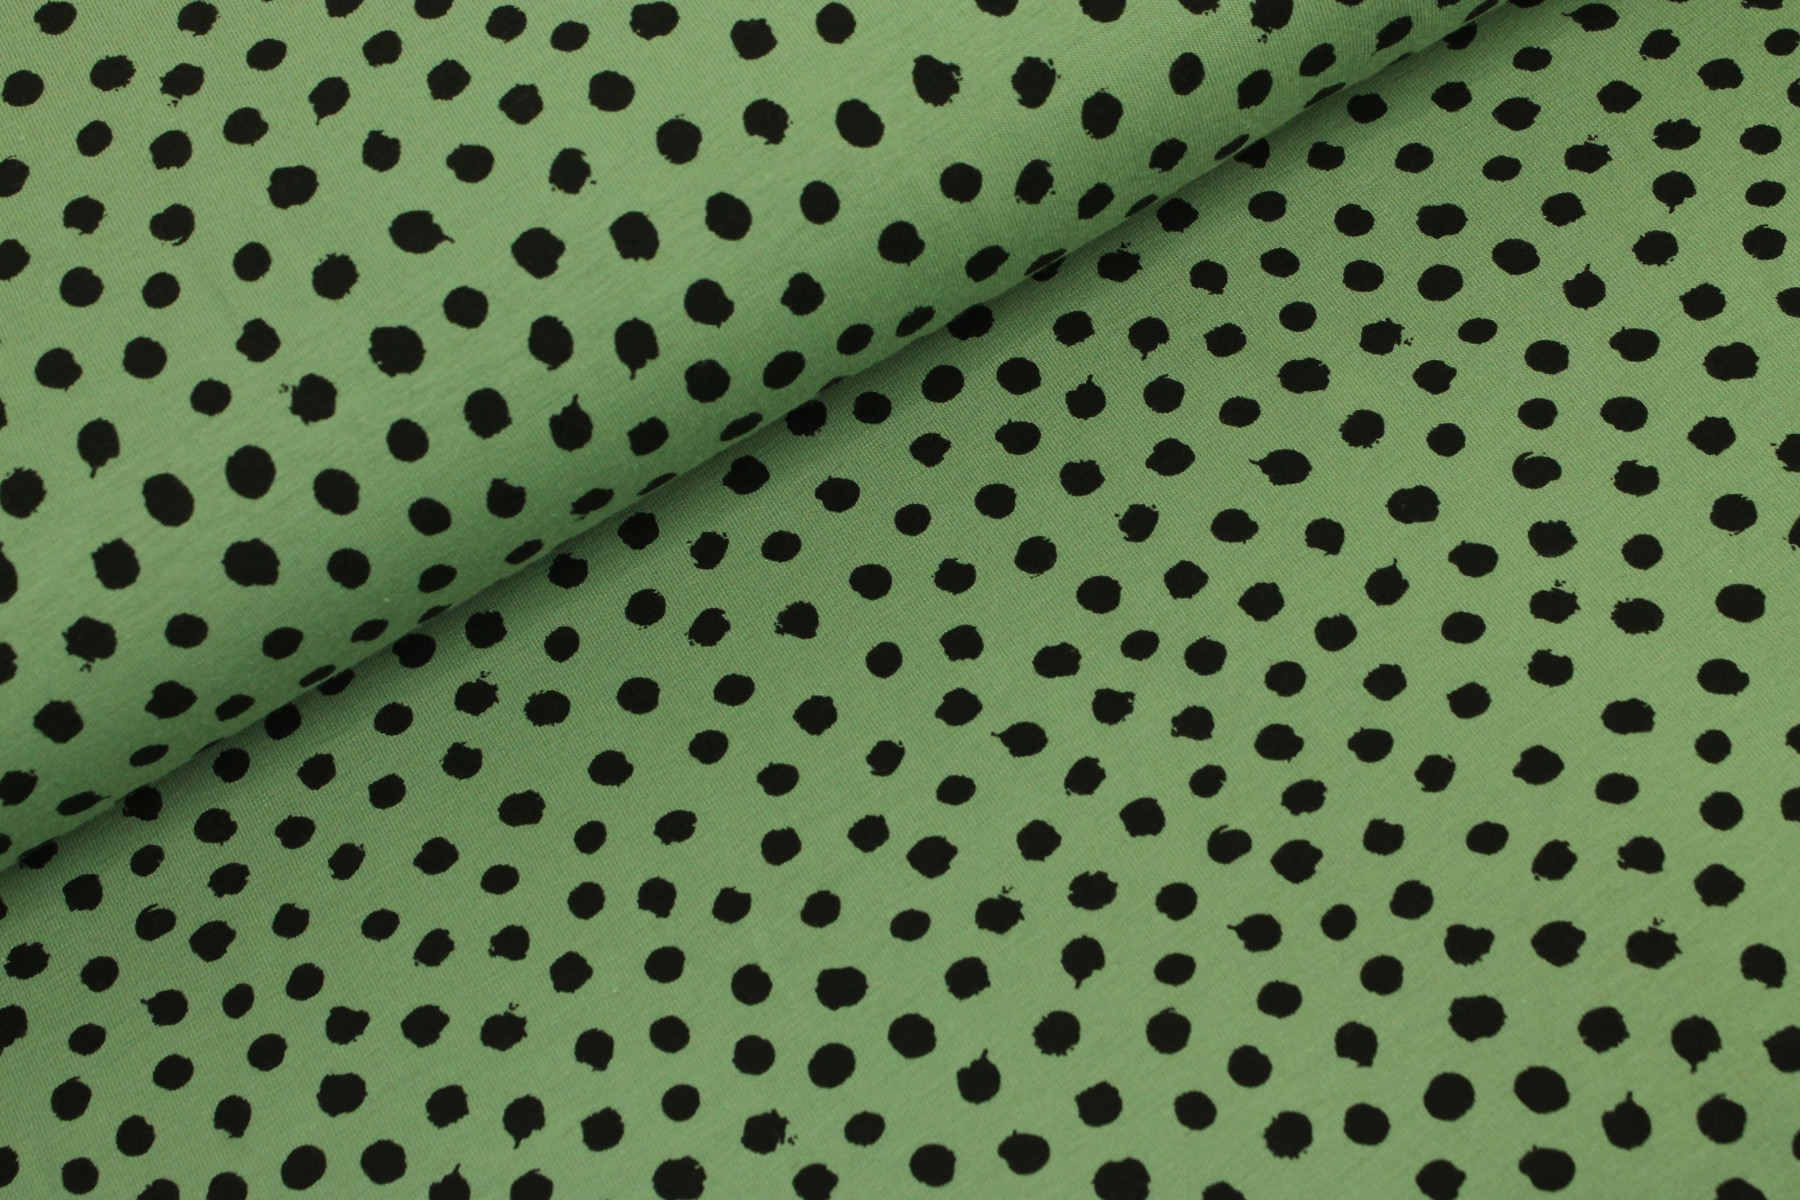 Dots Tricot Groen - By Poppy